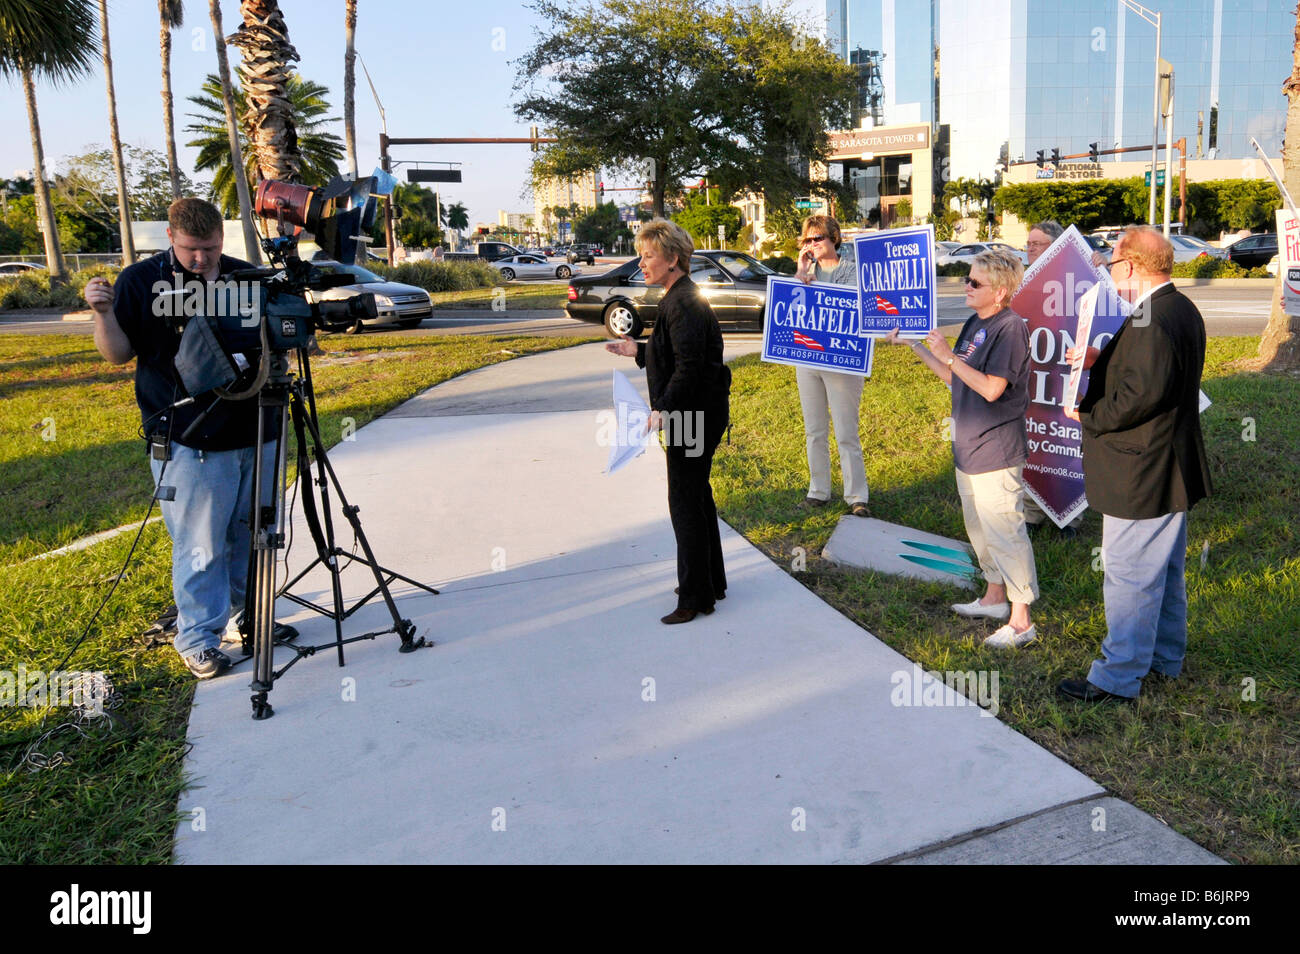 Female television news reporter interviews political supporters on busy street - Stock Image